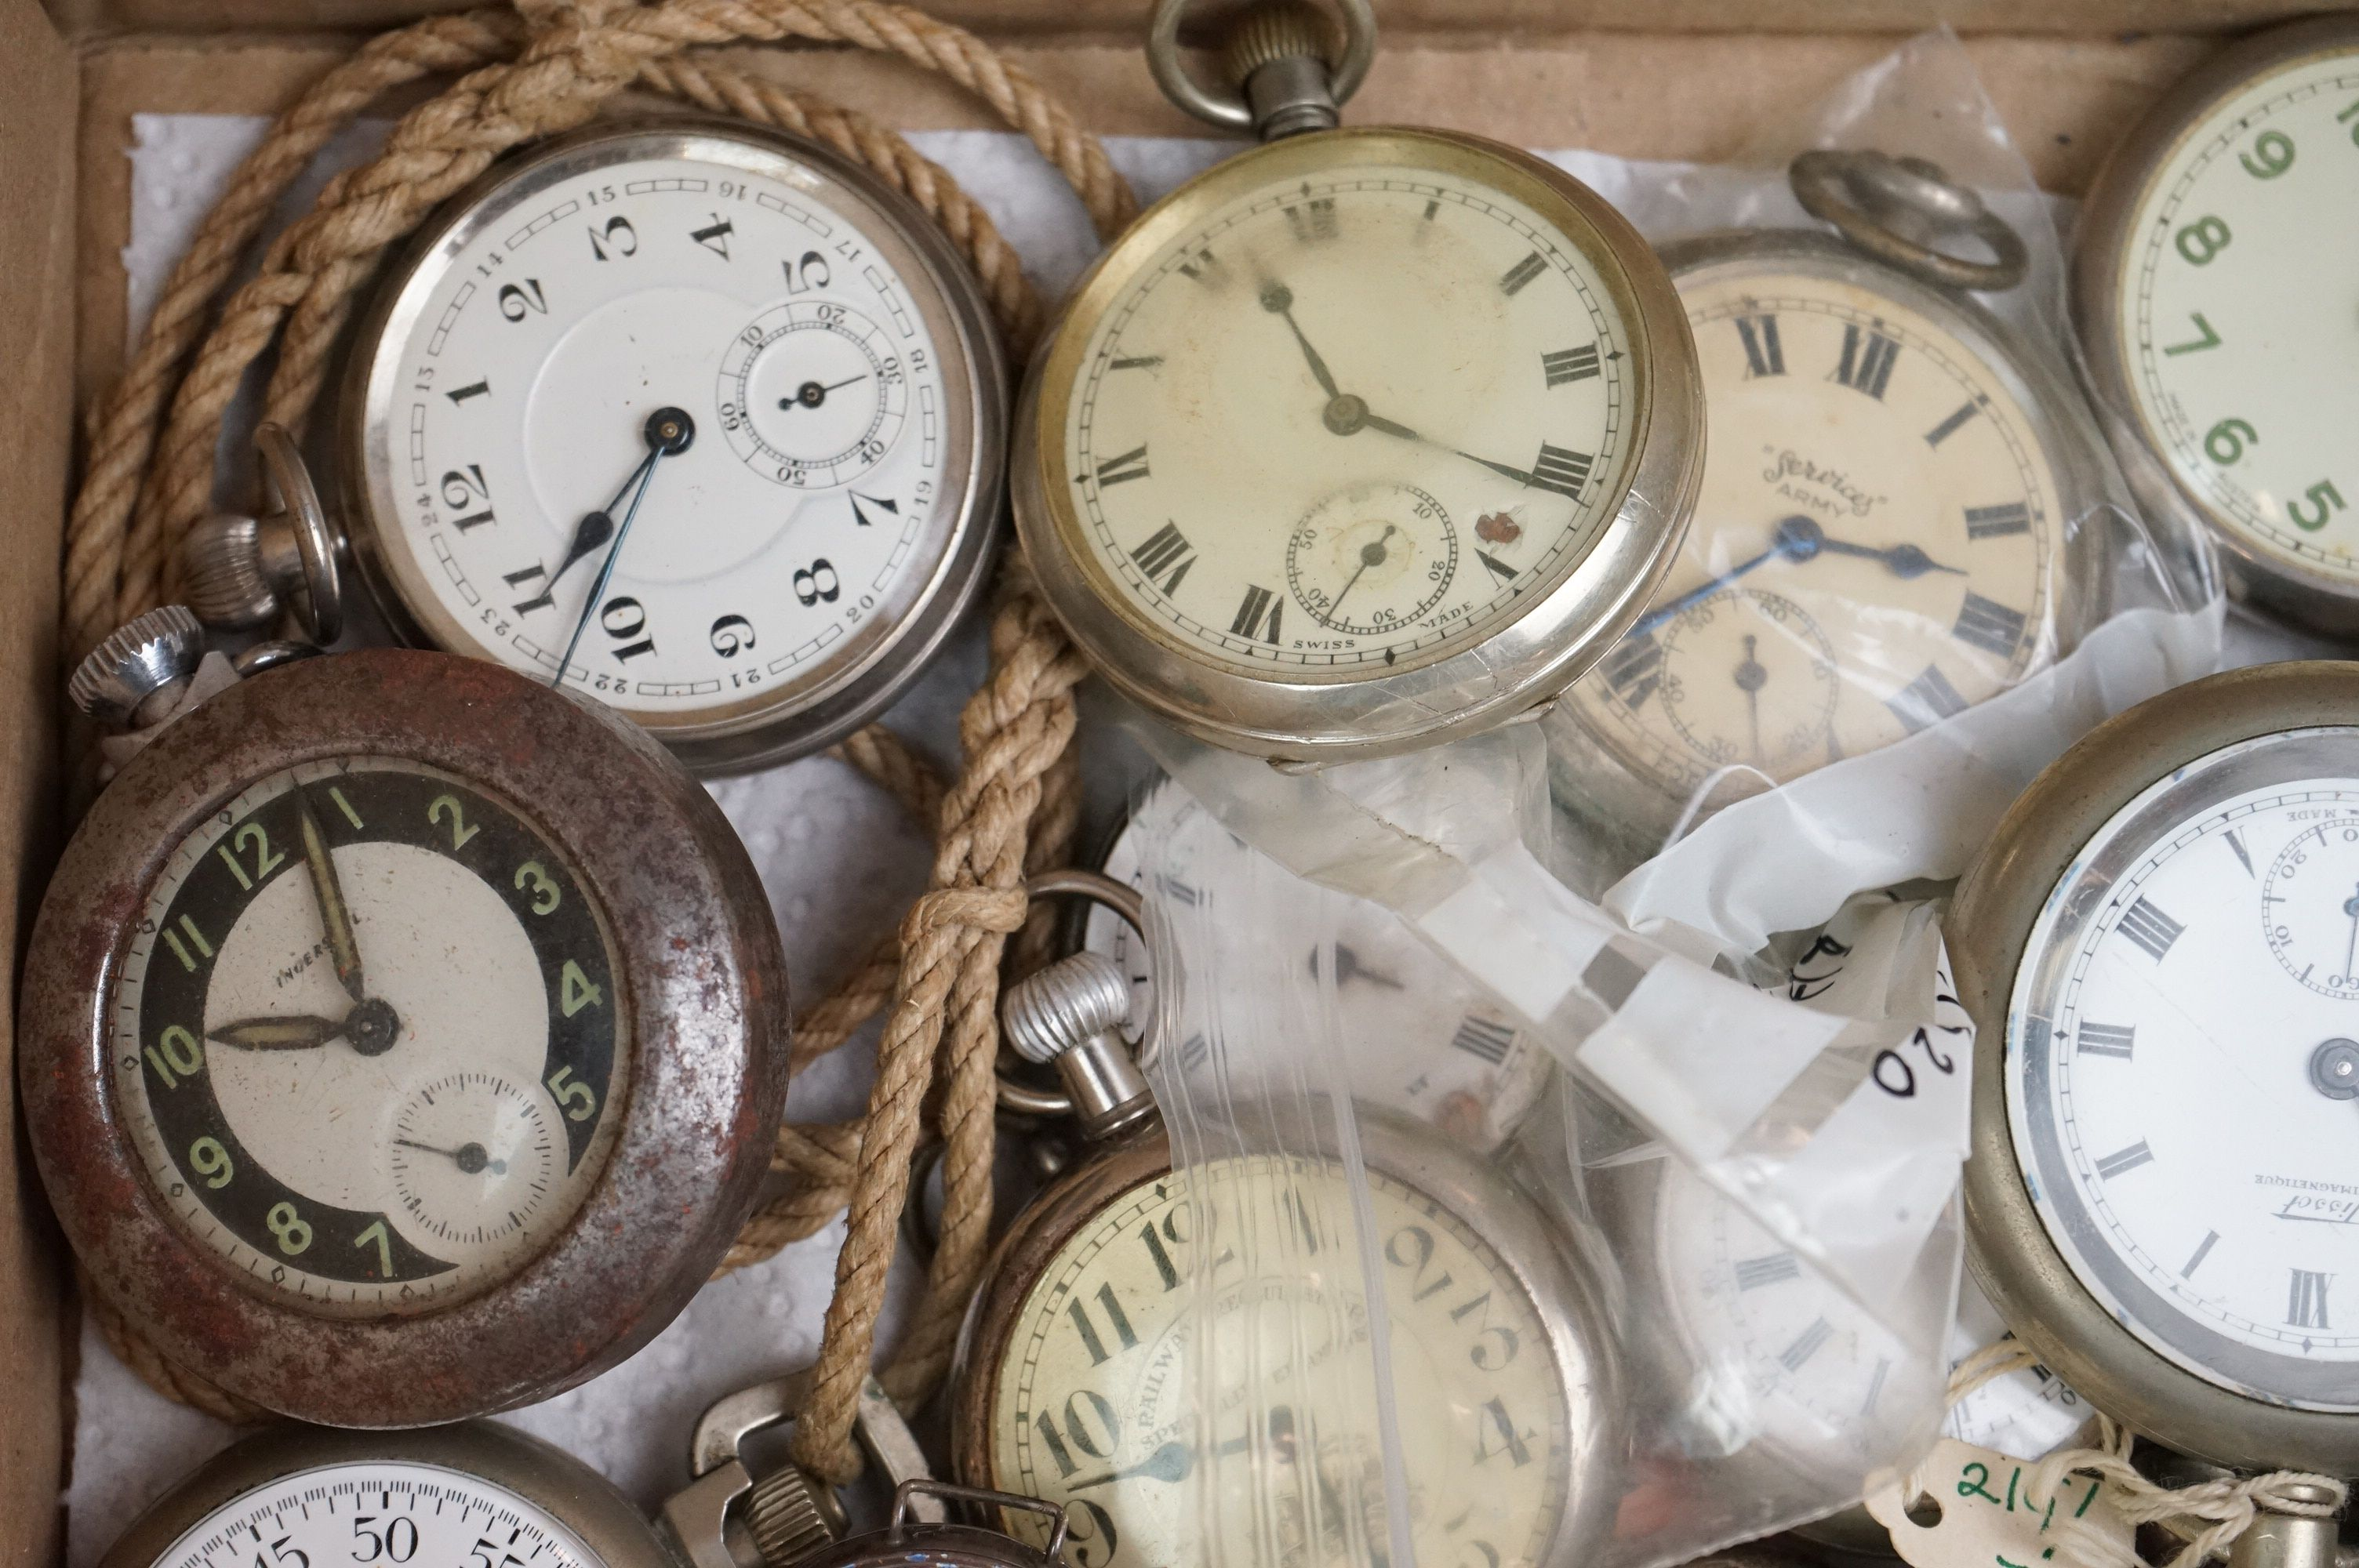 Large collection of white metal, chrome plated and stainless steel pocket watches to include Tissot, - Image 2 of 5